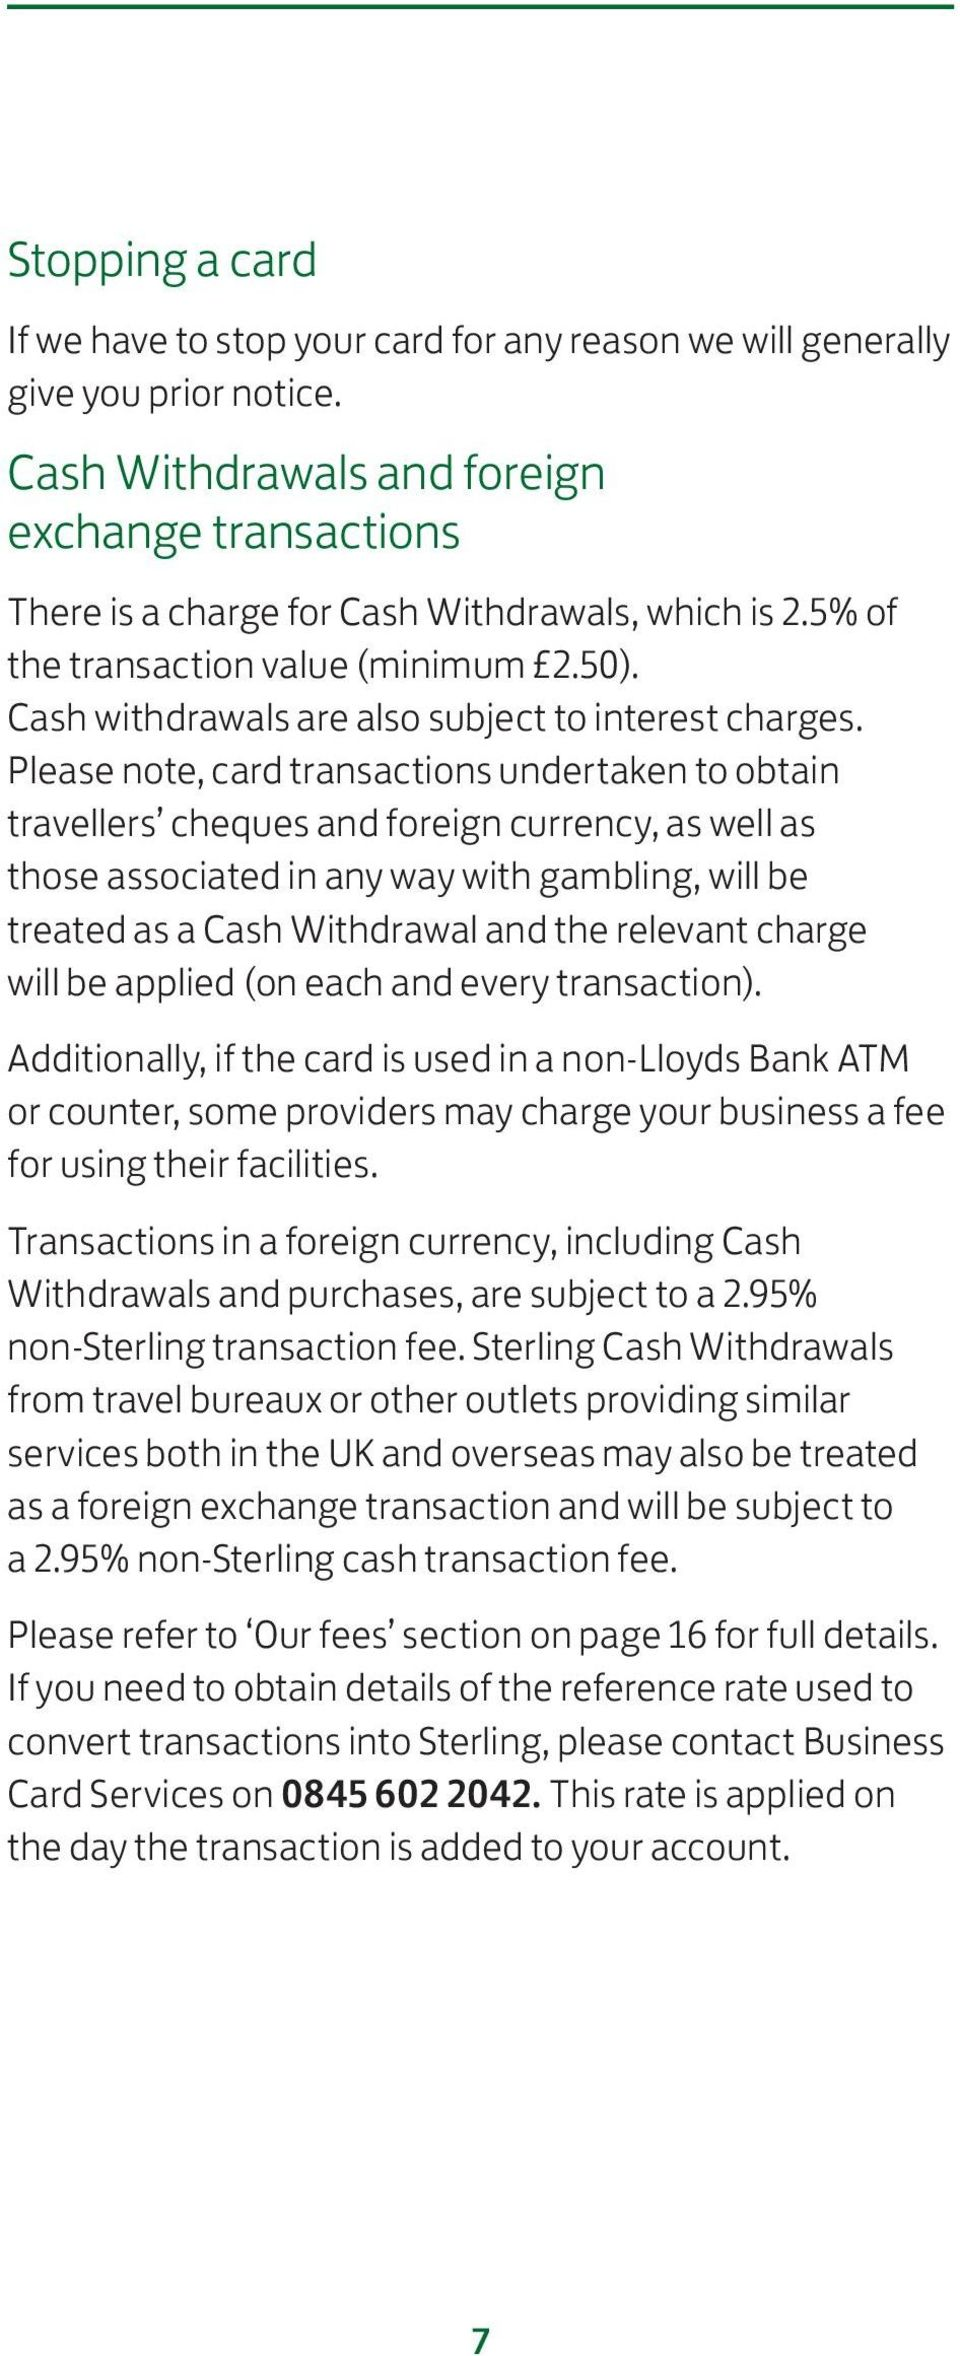 Please note, card transactions undertaken to obtain travellers cheques and foreign currency, as well as those associated in any way with gambling, will be treated as a Cash Withdrawal and the